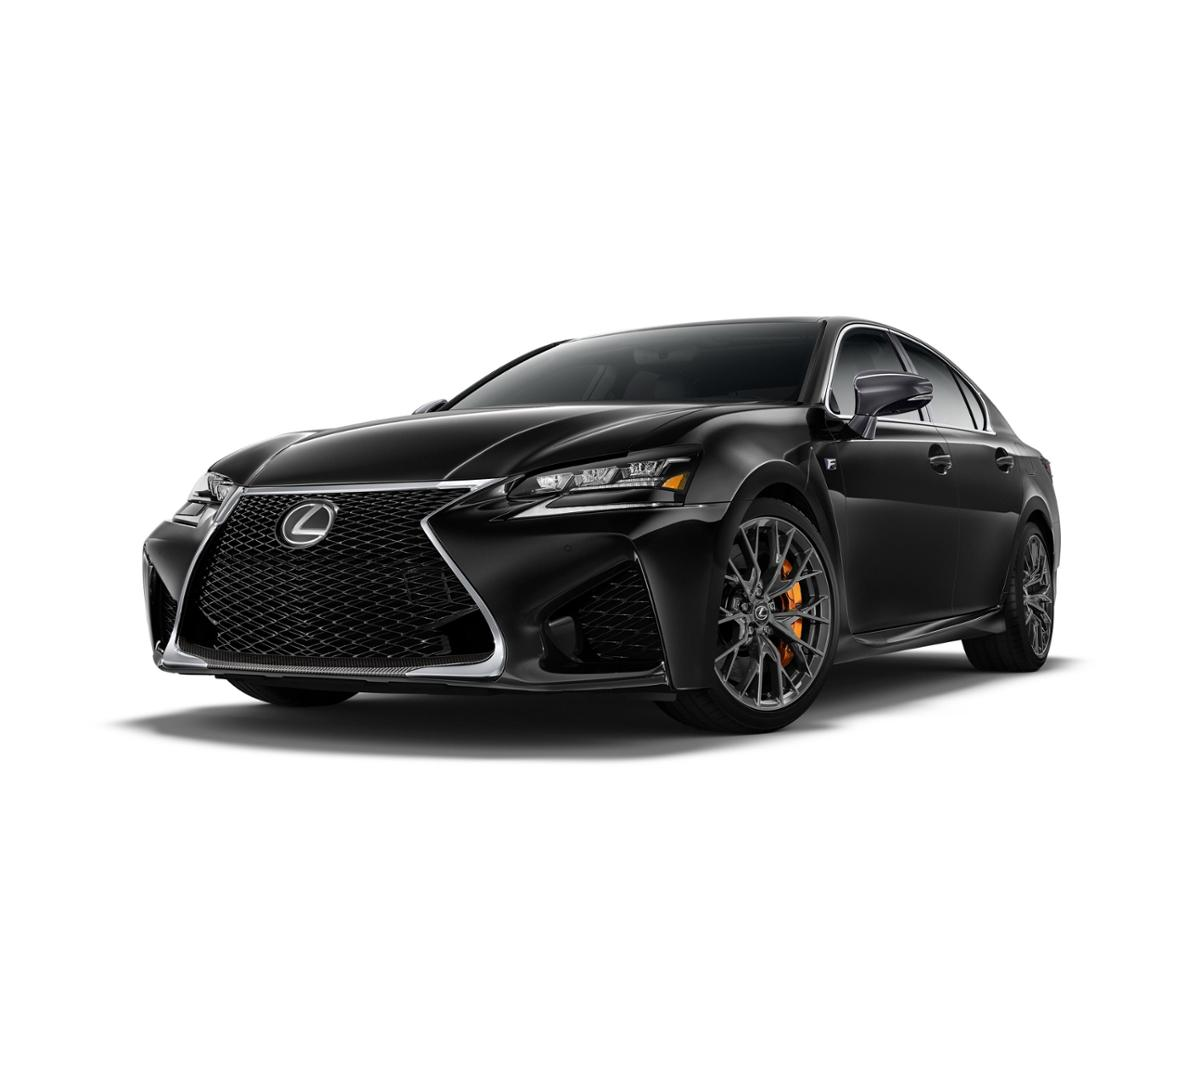 2017 Lexus GS F Vehicle Photo in Santa Monica, CA 90404